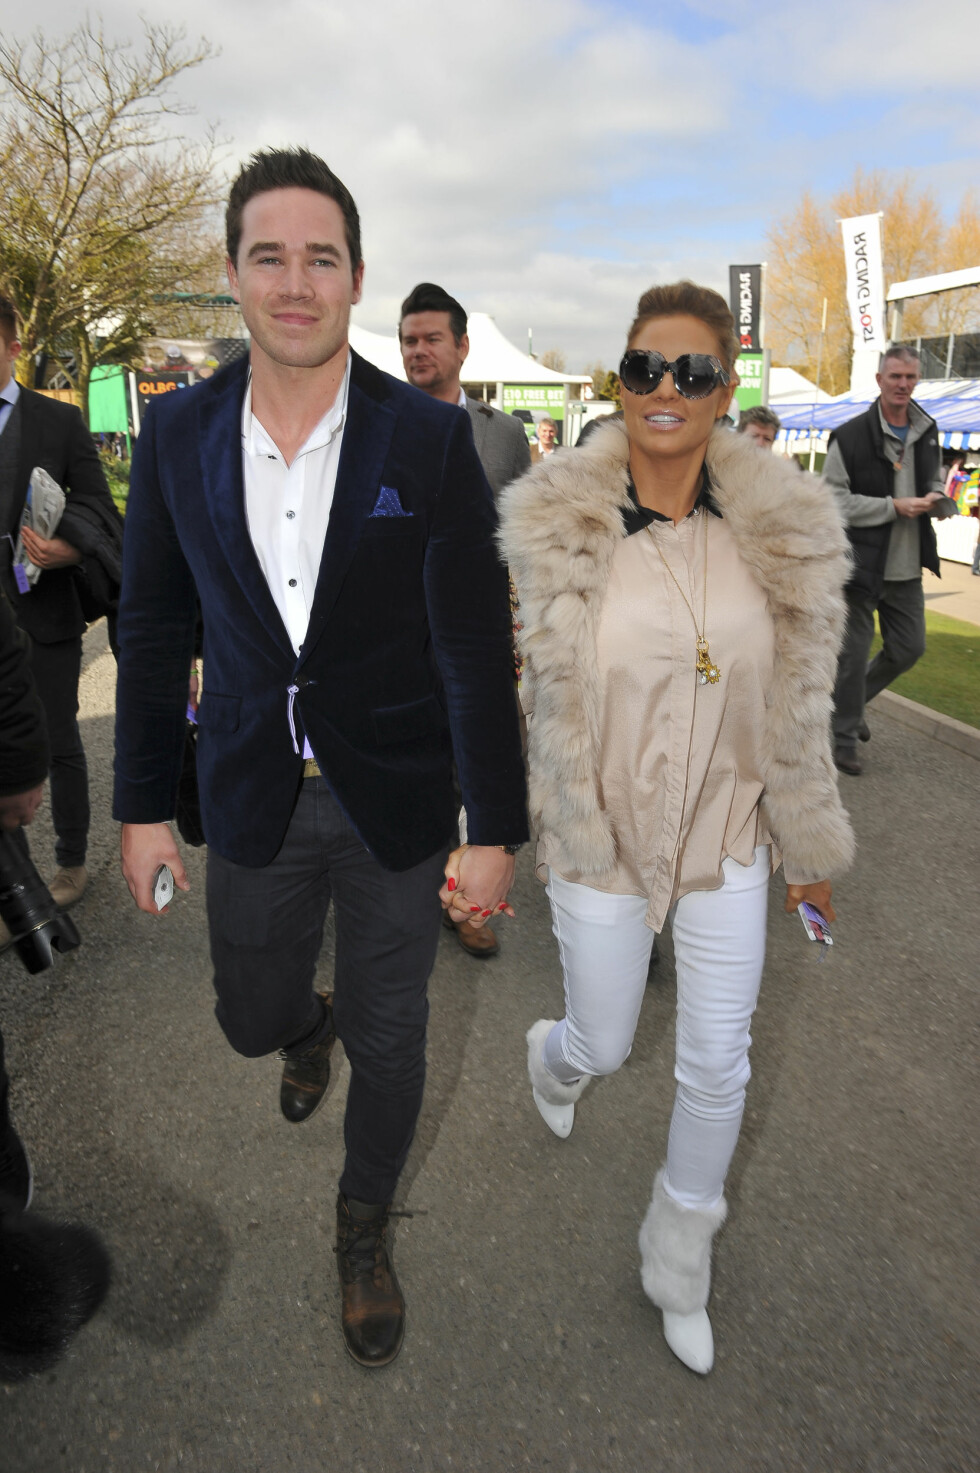 AVVERGET NAVNEKRISE: Katie Price ville helst kalle datteren Bunny (1 mnd) Duchess eller Duchess Kate, men da satte ektemannen Kieran foten ned. Her er paret på Cheltenham Festival i mars 2014. Foto: Splash News/All Over Press